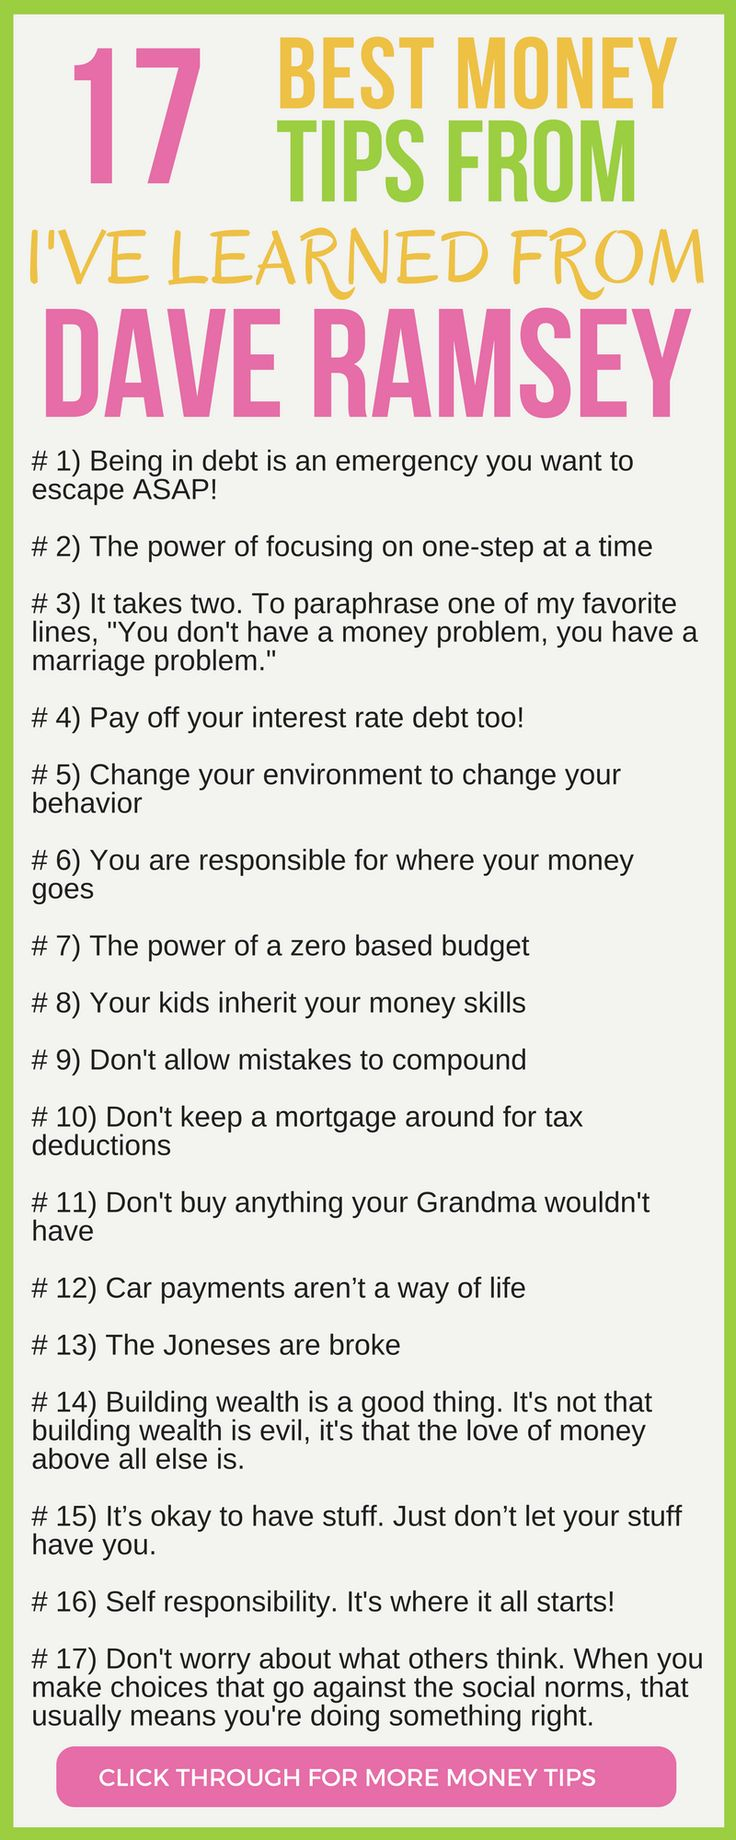 CHECK THIS OUT! 17 of the best money tips from Dave Ramsey. Here's the 17 personal finance lessons I've taken away from Dave Ramsey.